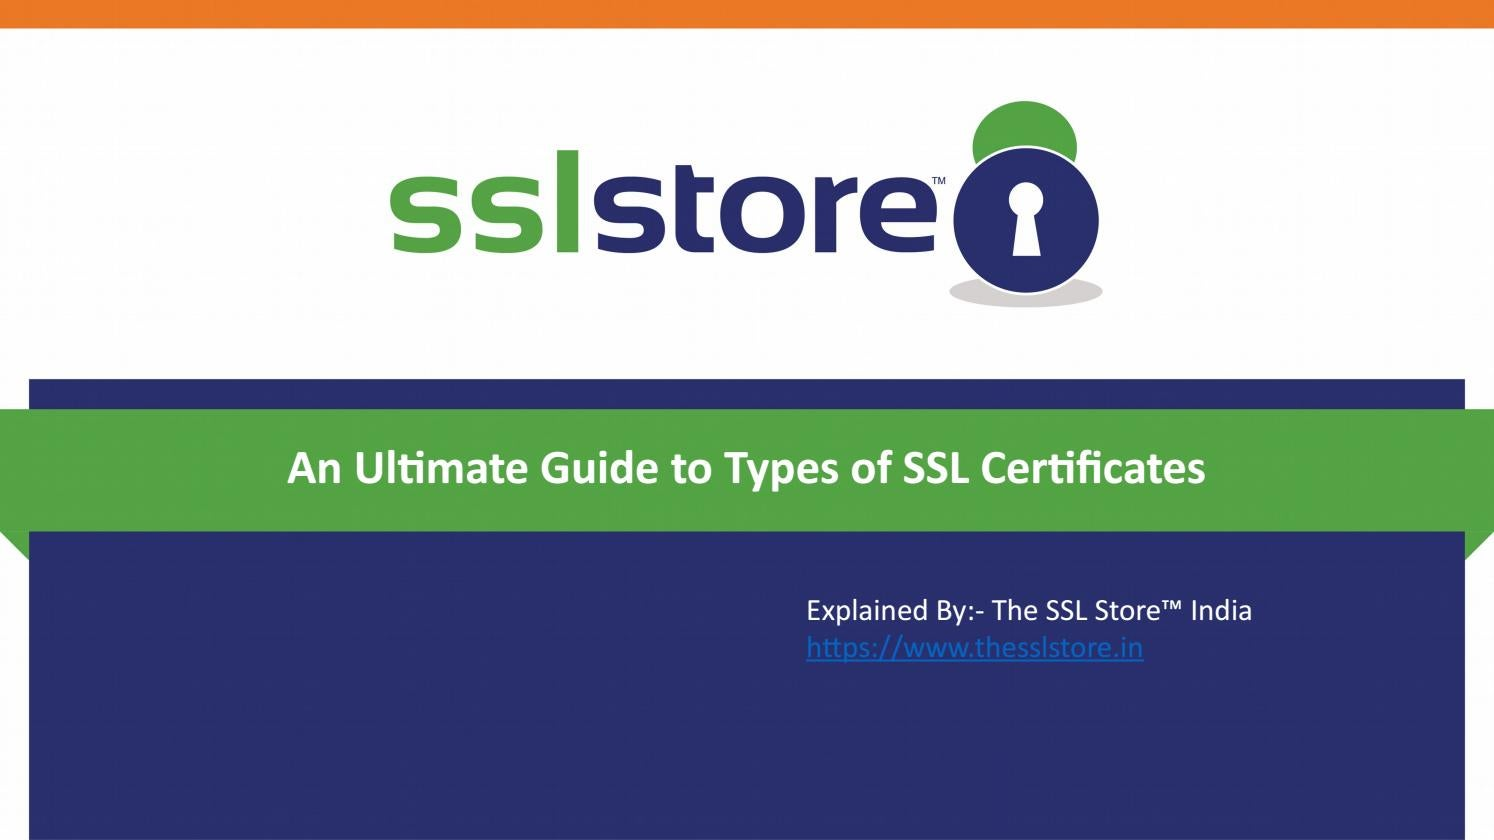 An Ultimate Guide To Types Of Ssl Certificates By The Ssl Store